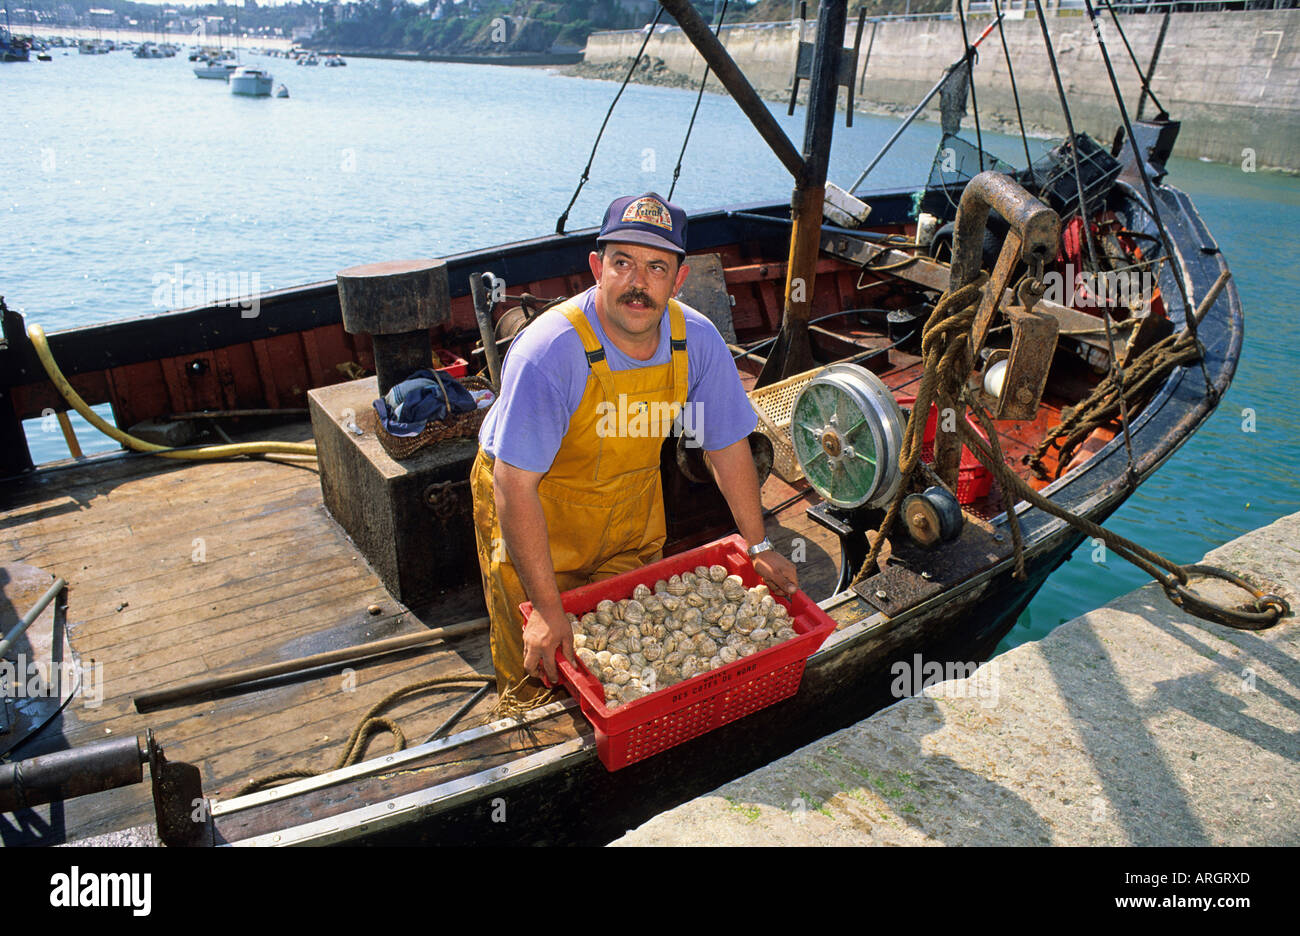 A fisherman unloading his catch onto the quayside from the decks of his boat tied up in the harbour of St Cast Le Guildo - Stock Image